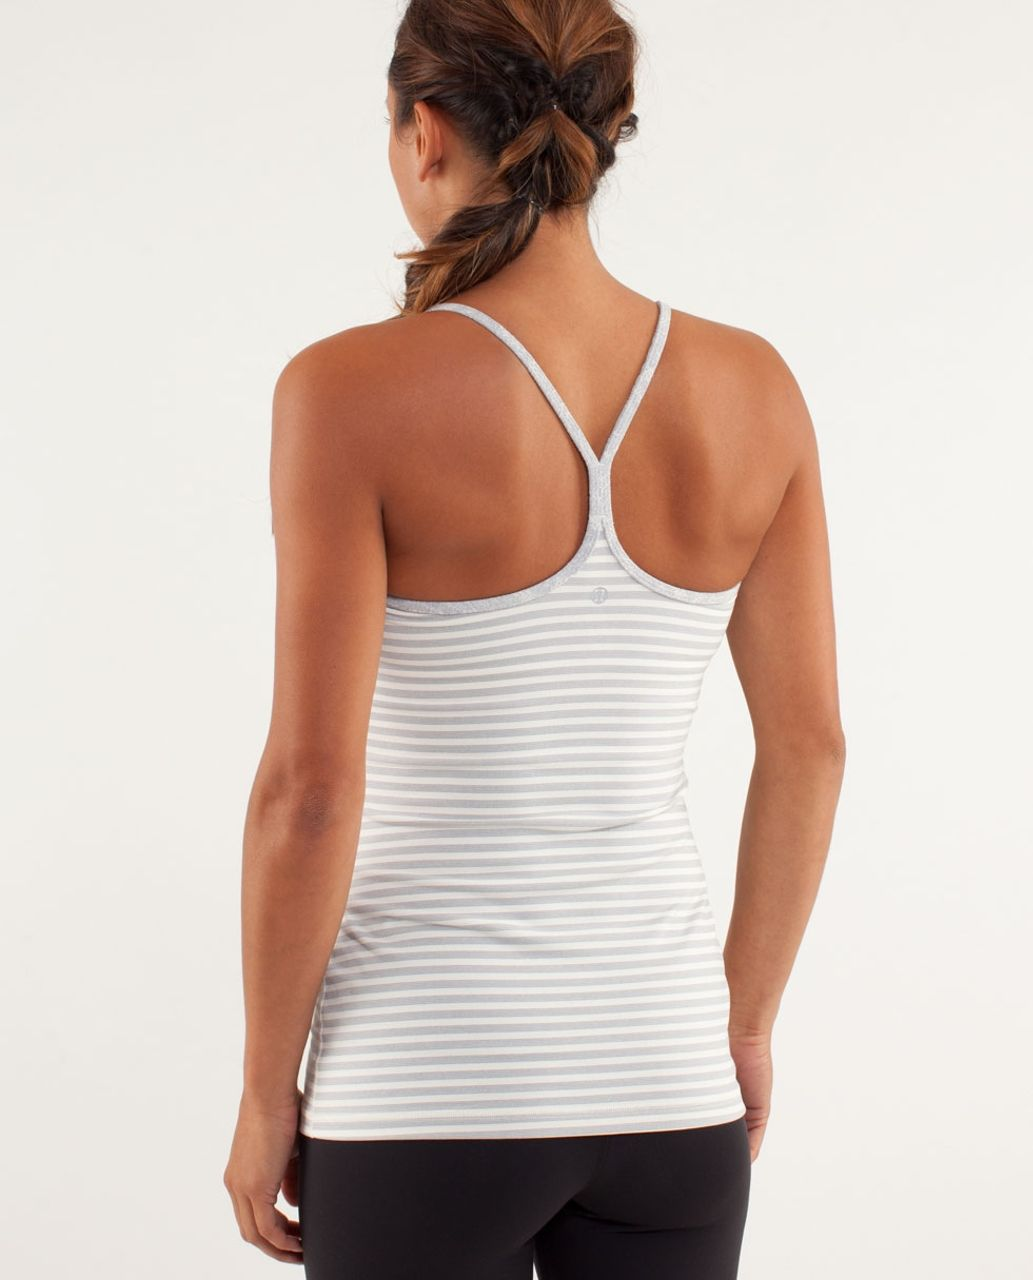 Lululemon Power Y Tank *Luon Light - Half Micro Macro Stripe Polar Cream Heathered Silver Slate / Rose Herringbone Polar Cream